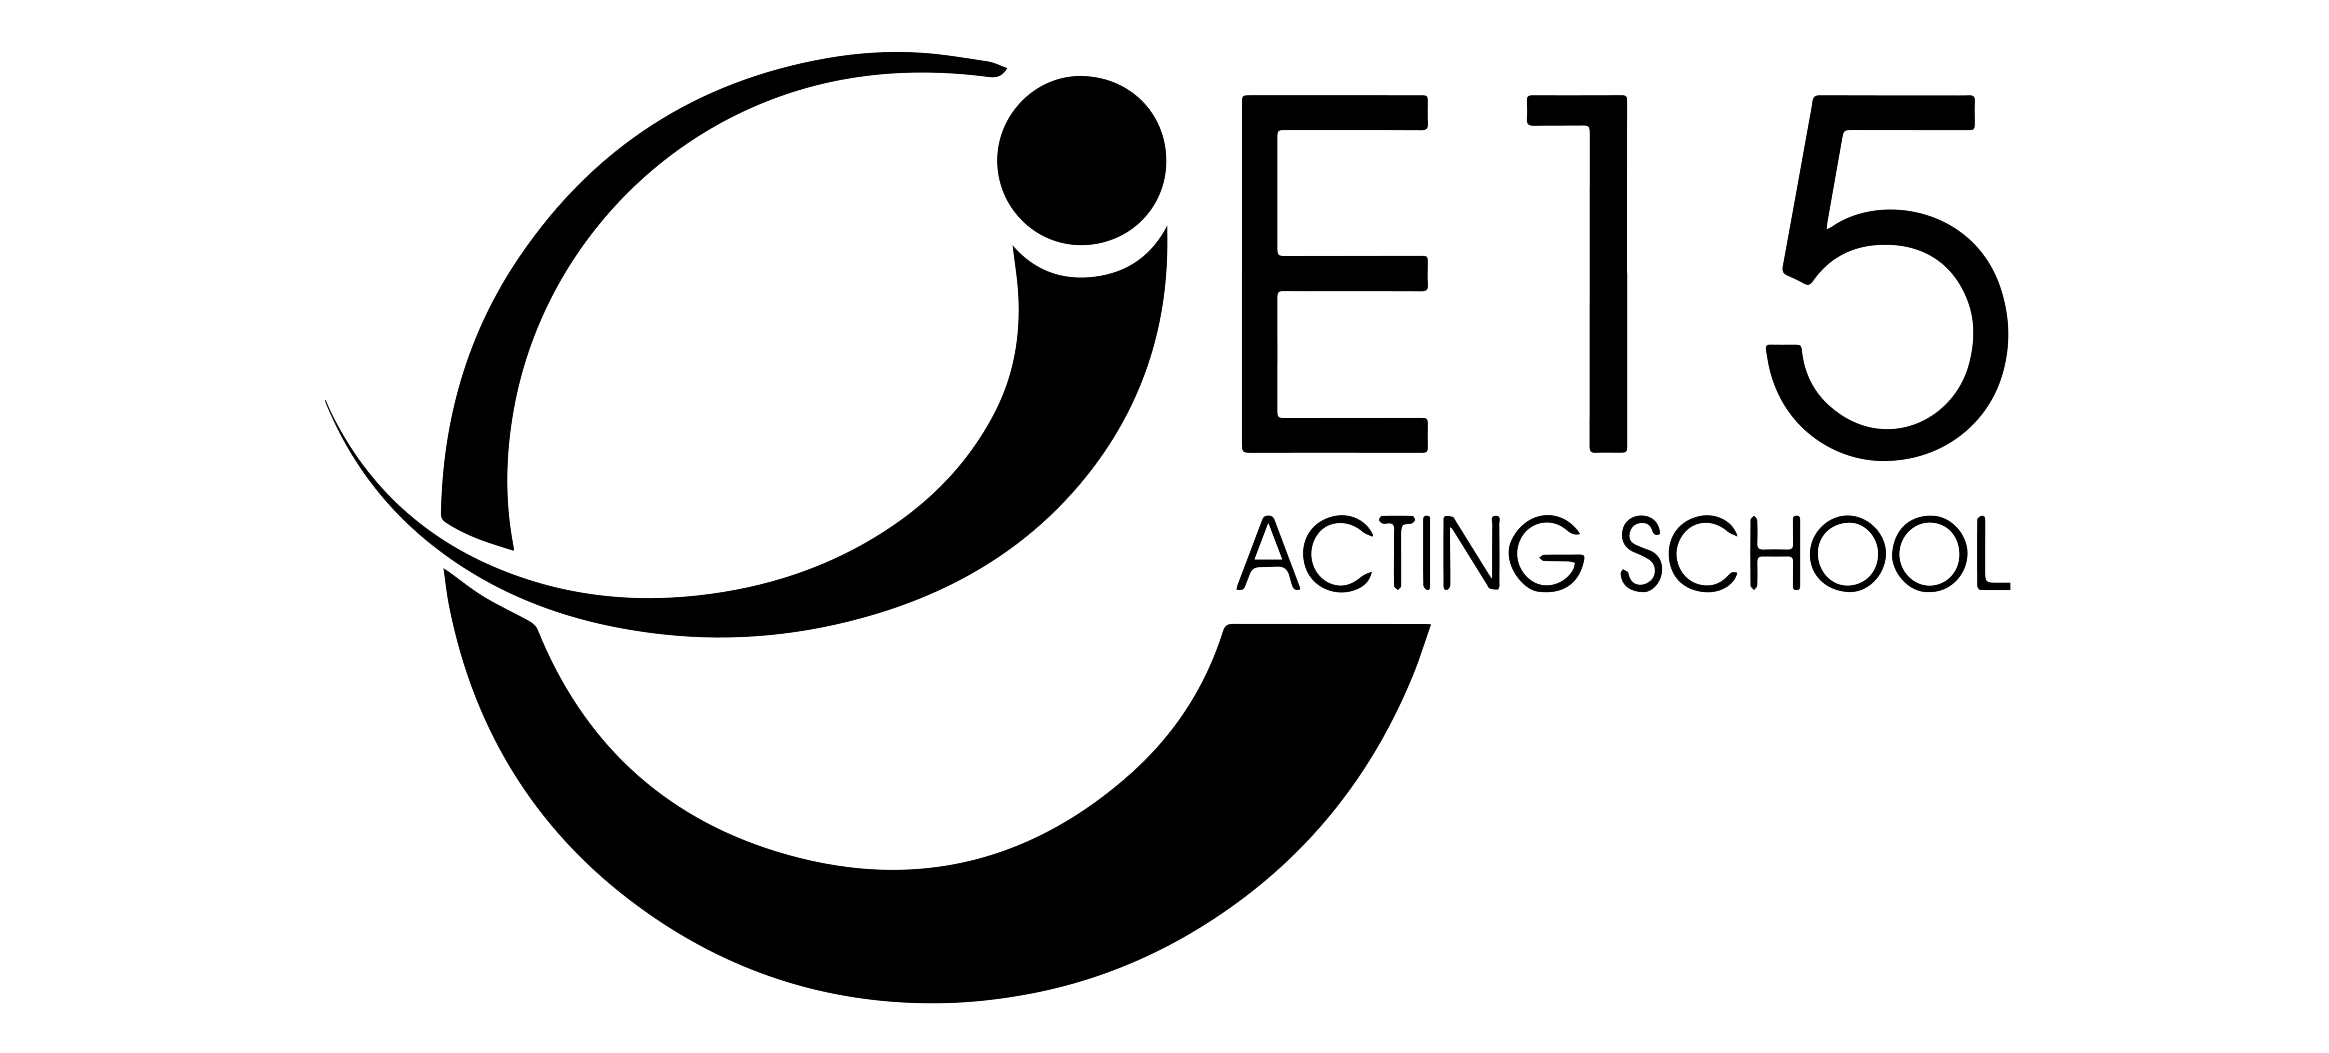 File East 15 Acting School Logo In Black And White Png Wikimedia